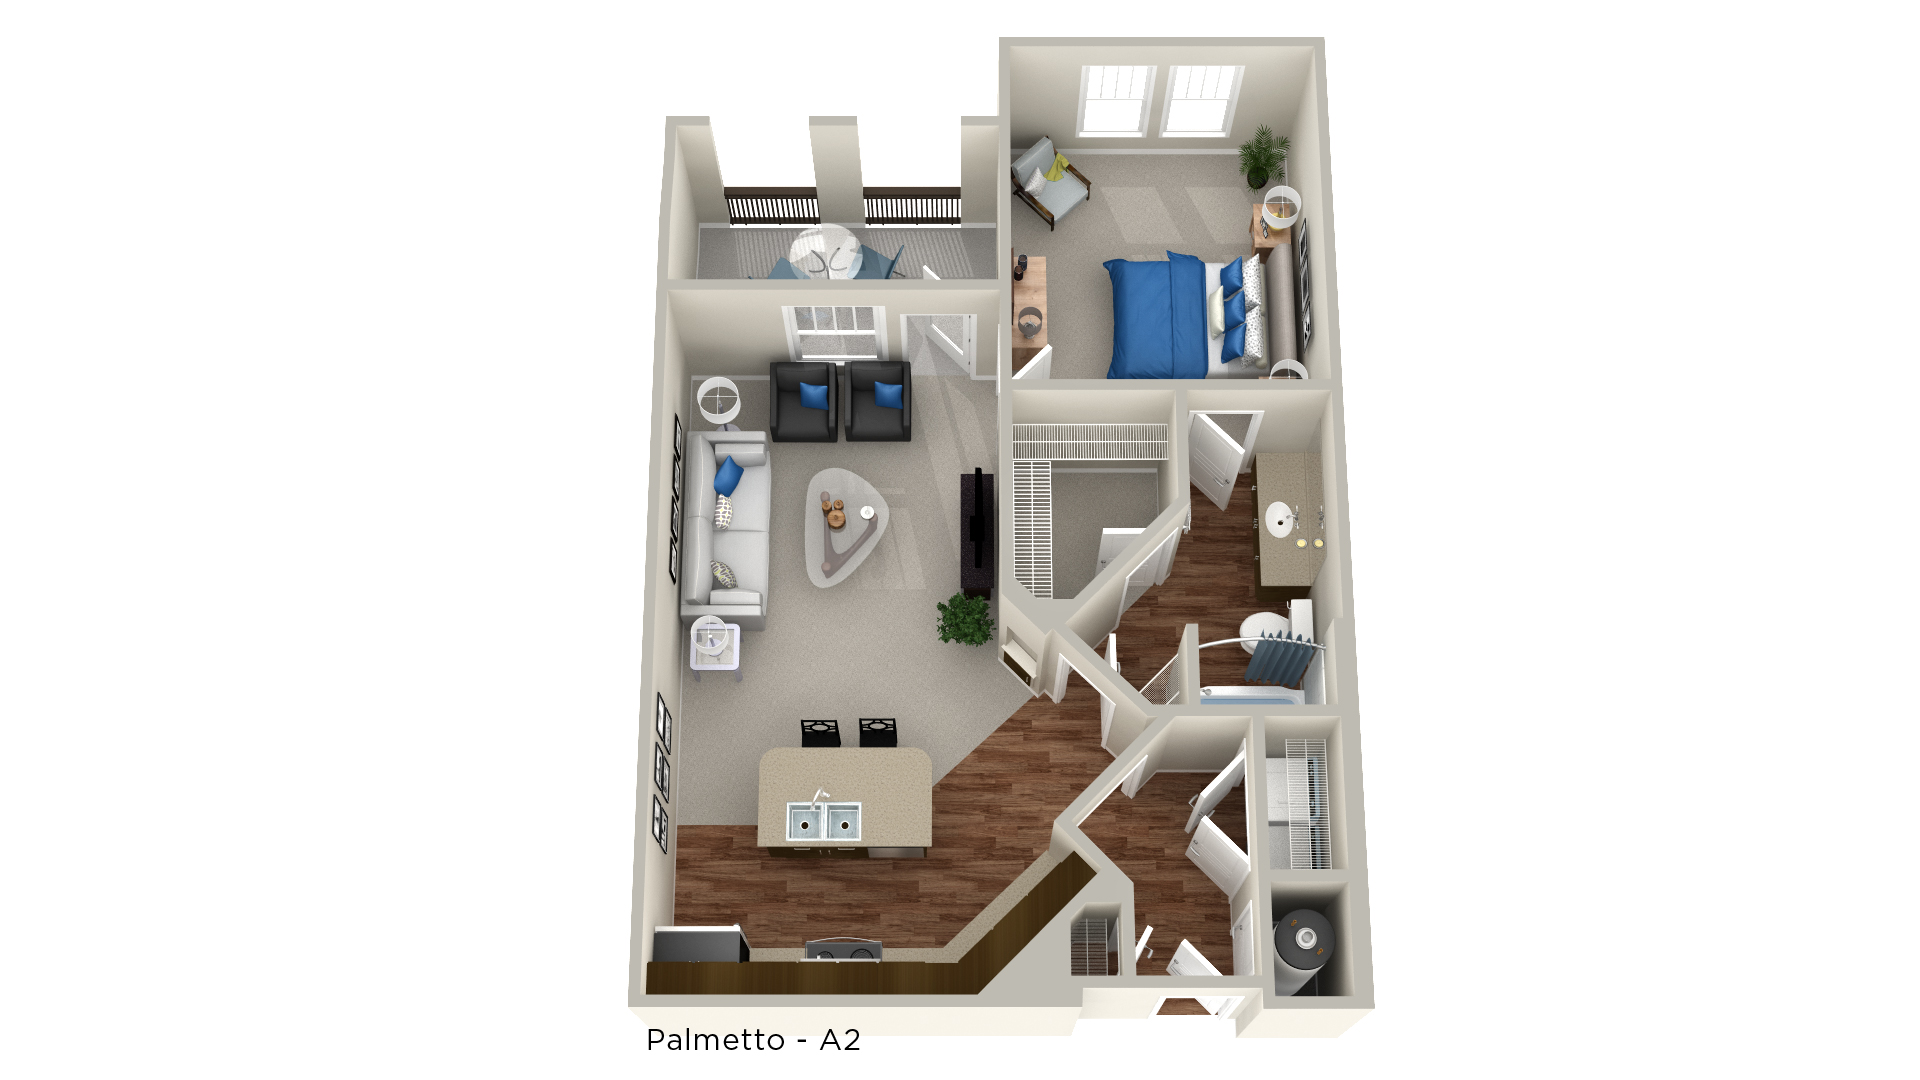 Floorplan - Palmetto image